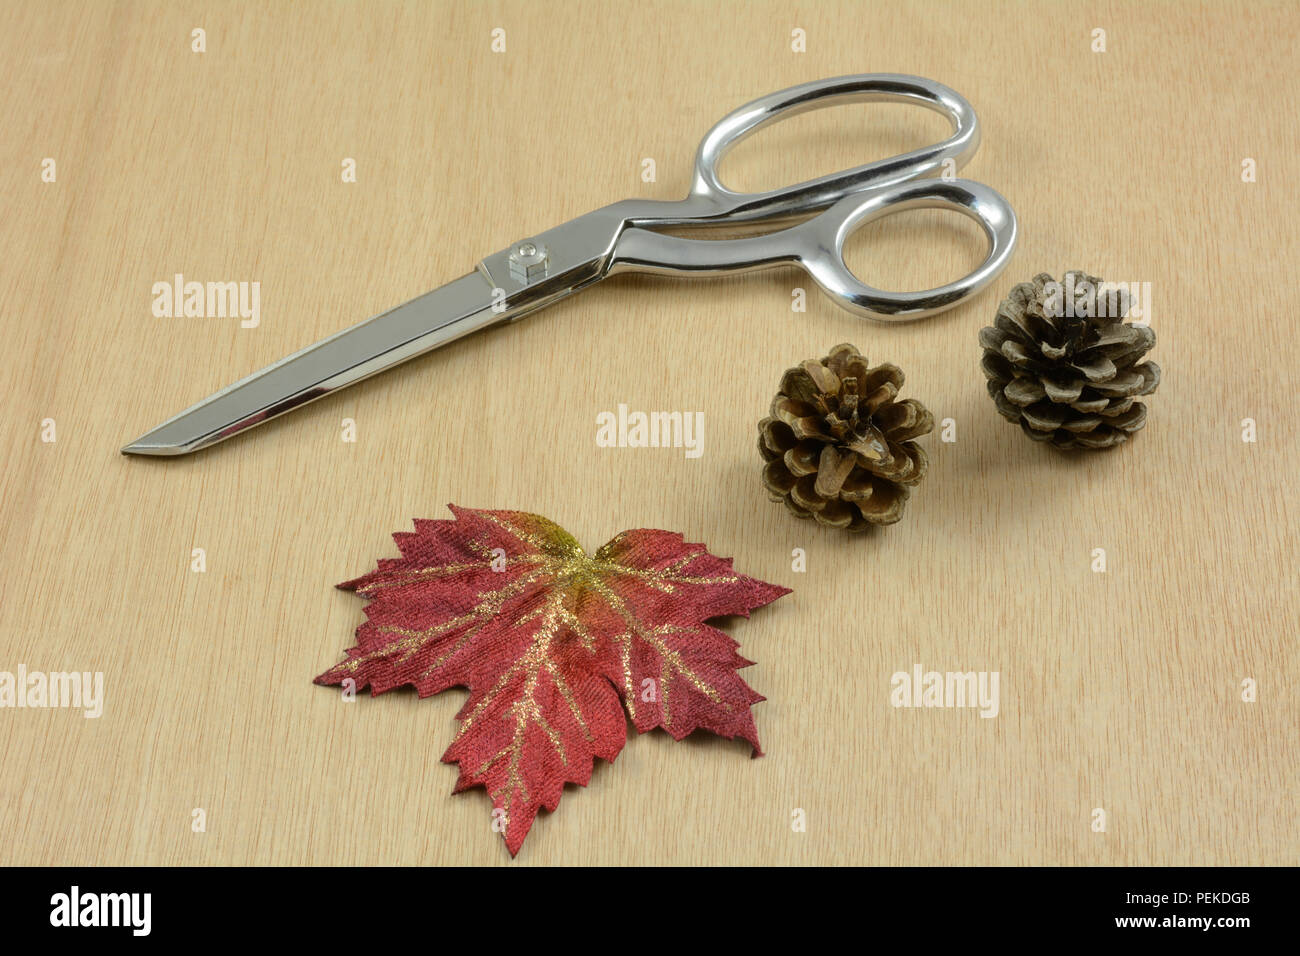 Items for Crafting autumn Thanksgiving decoration with scissors, pine cones and red fabric leaf - Stock Image